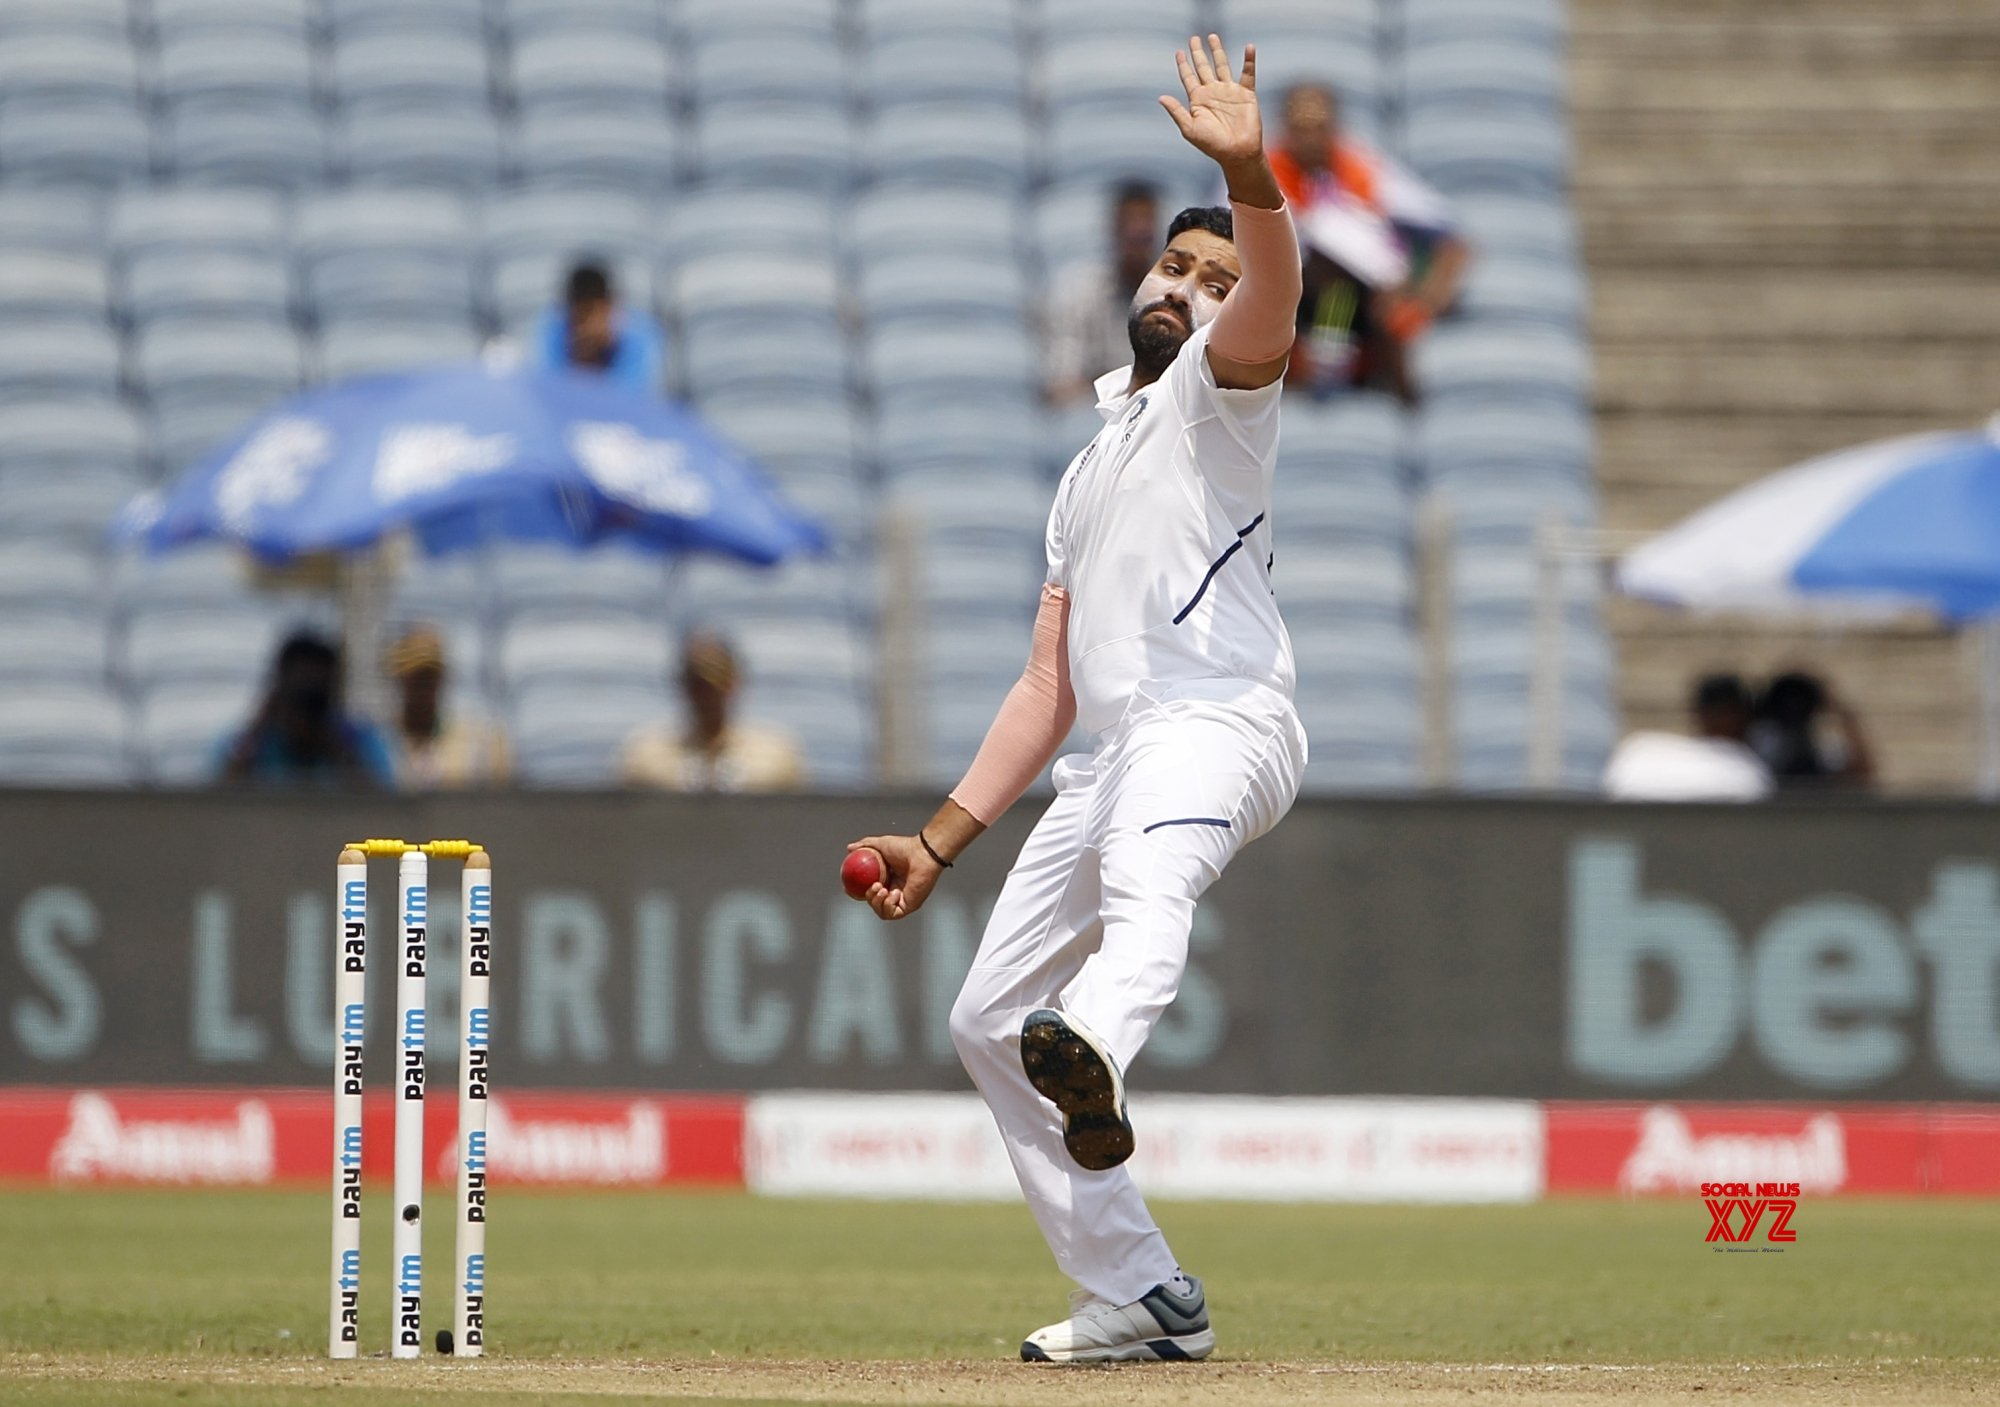 Pune: 2nd Test - India Vs South Africa - Day 3 (Batch - 13) #Gallery